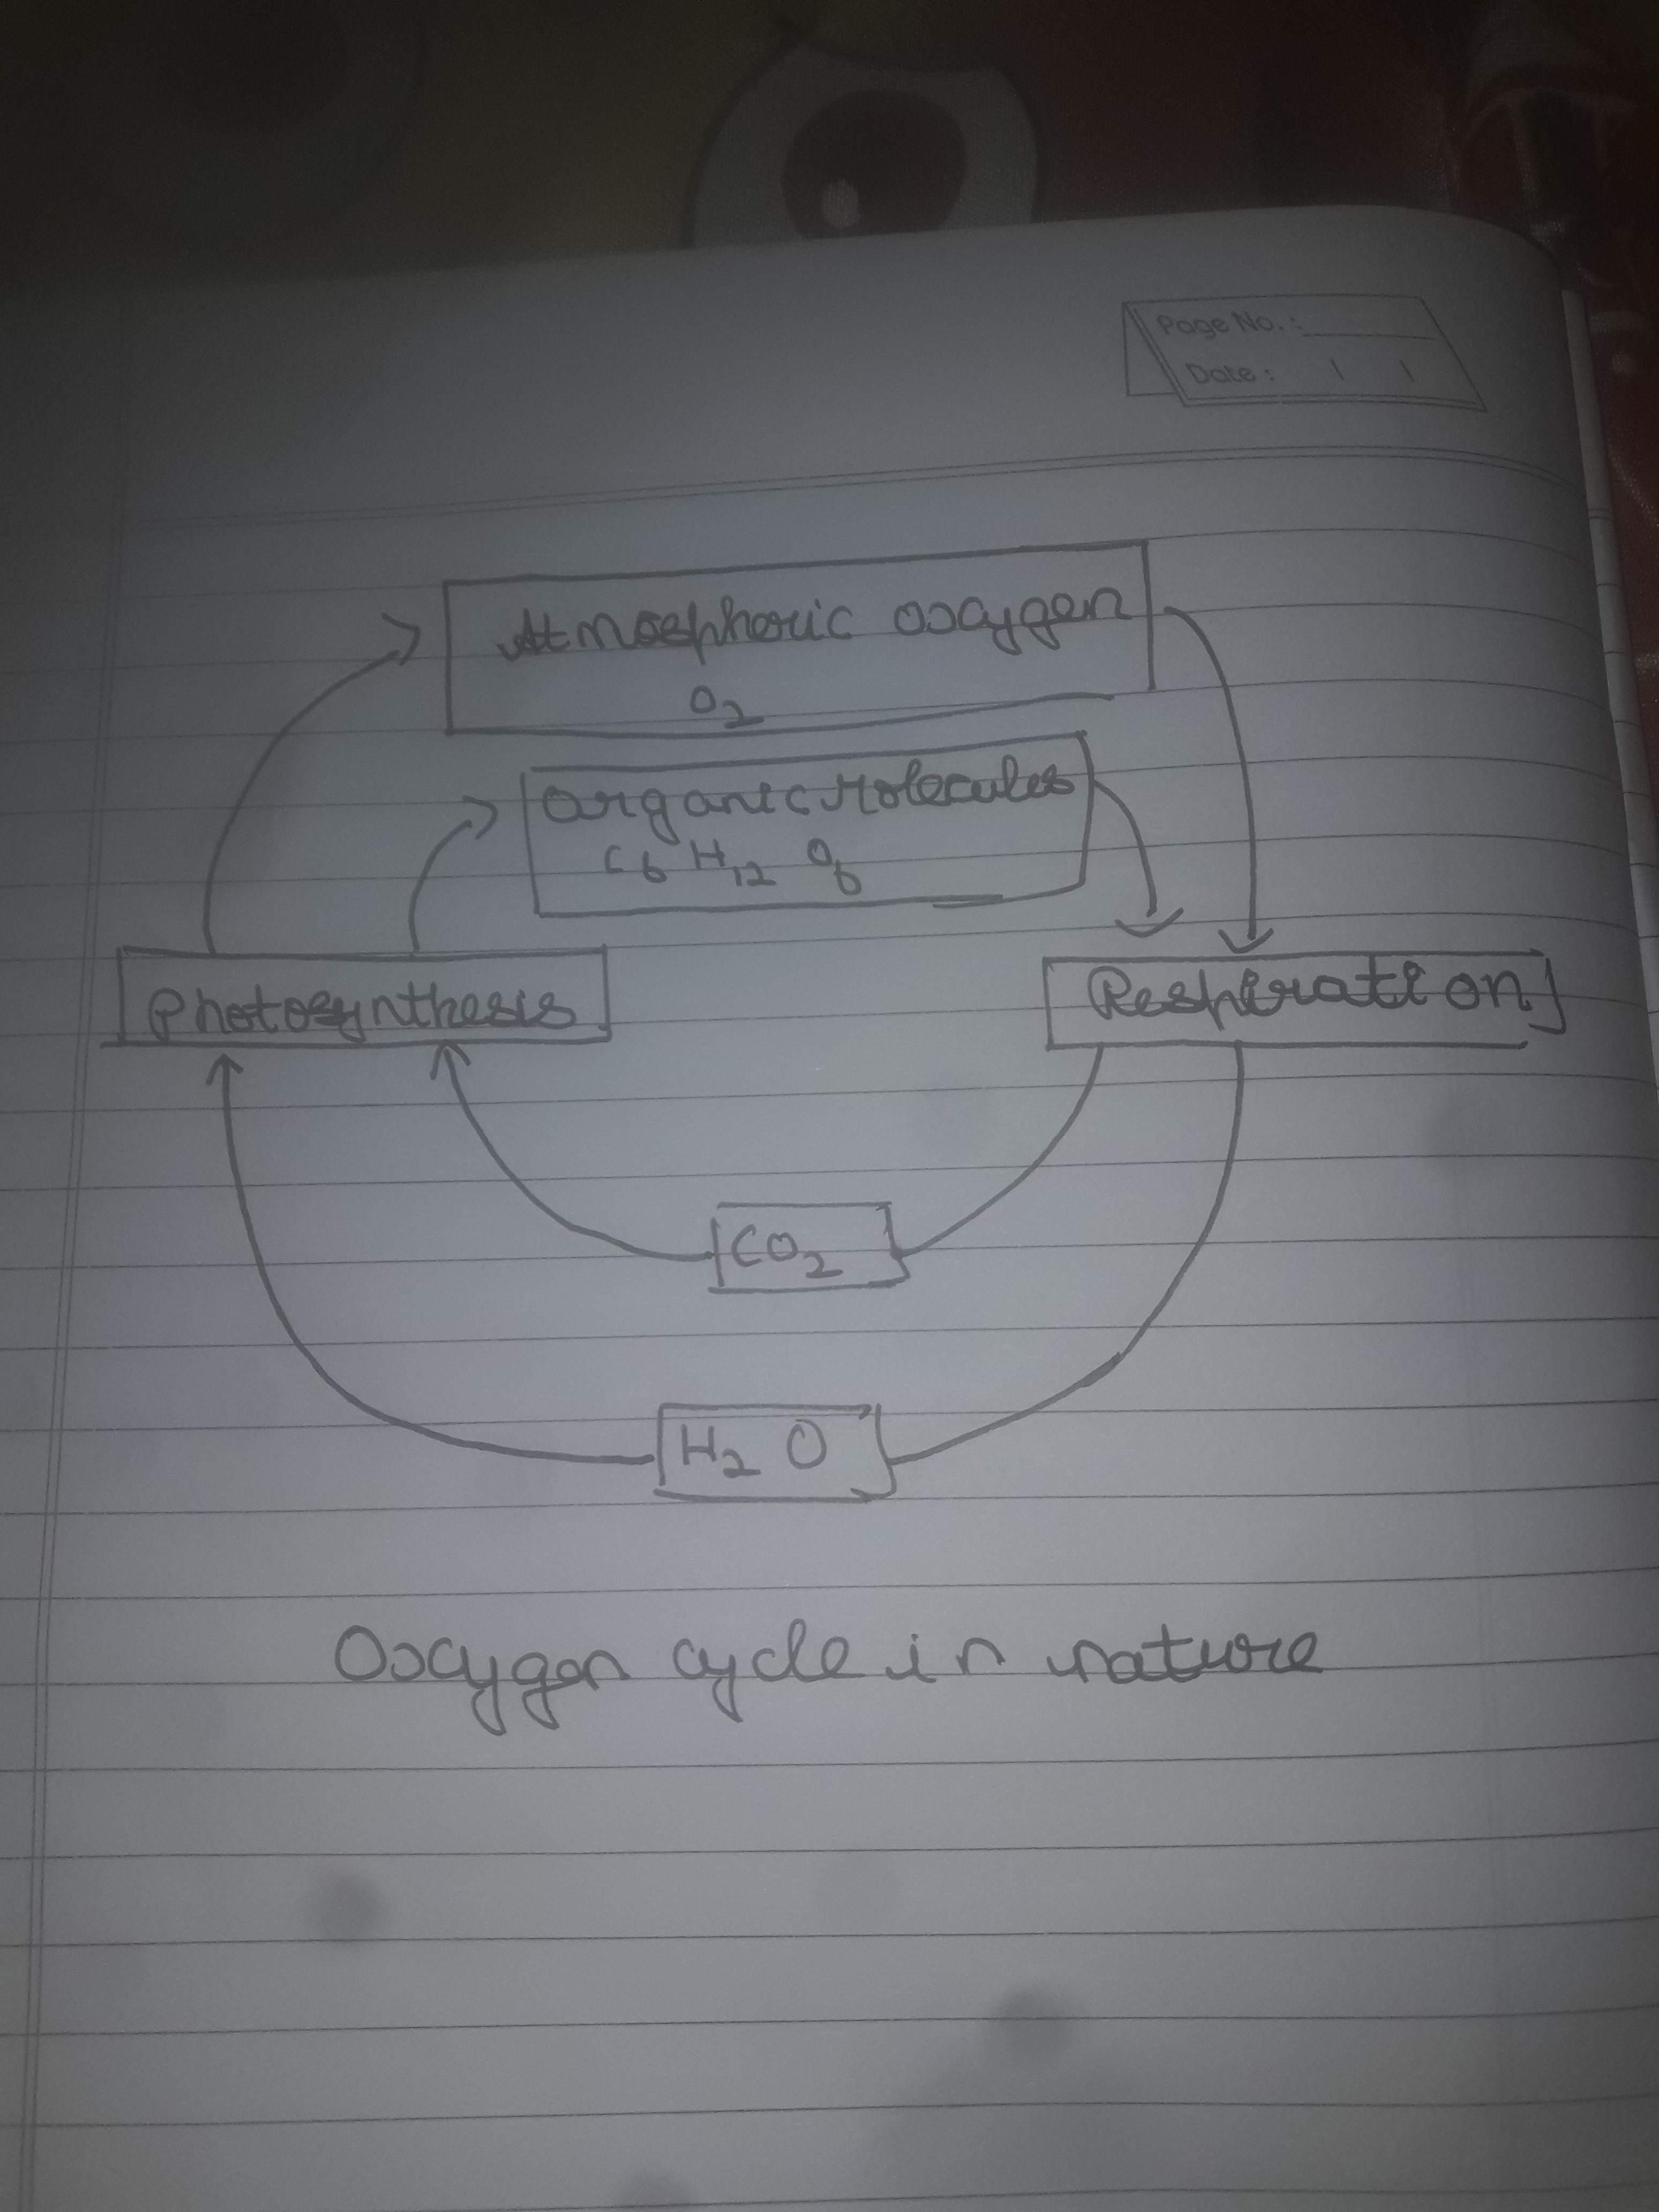 draw a neat labeled diagram of oxygen cycle in nature - brainly.in